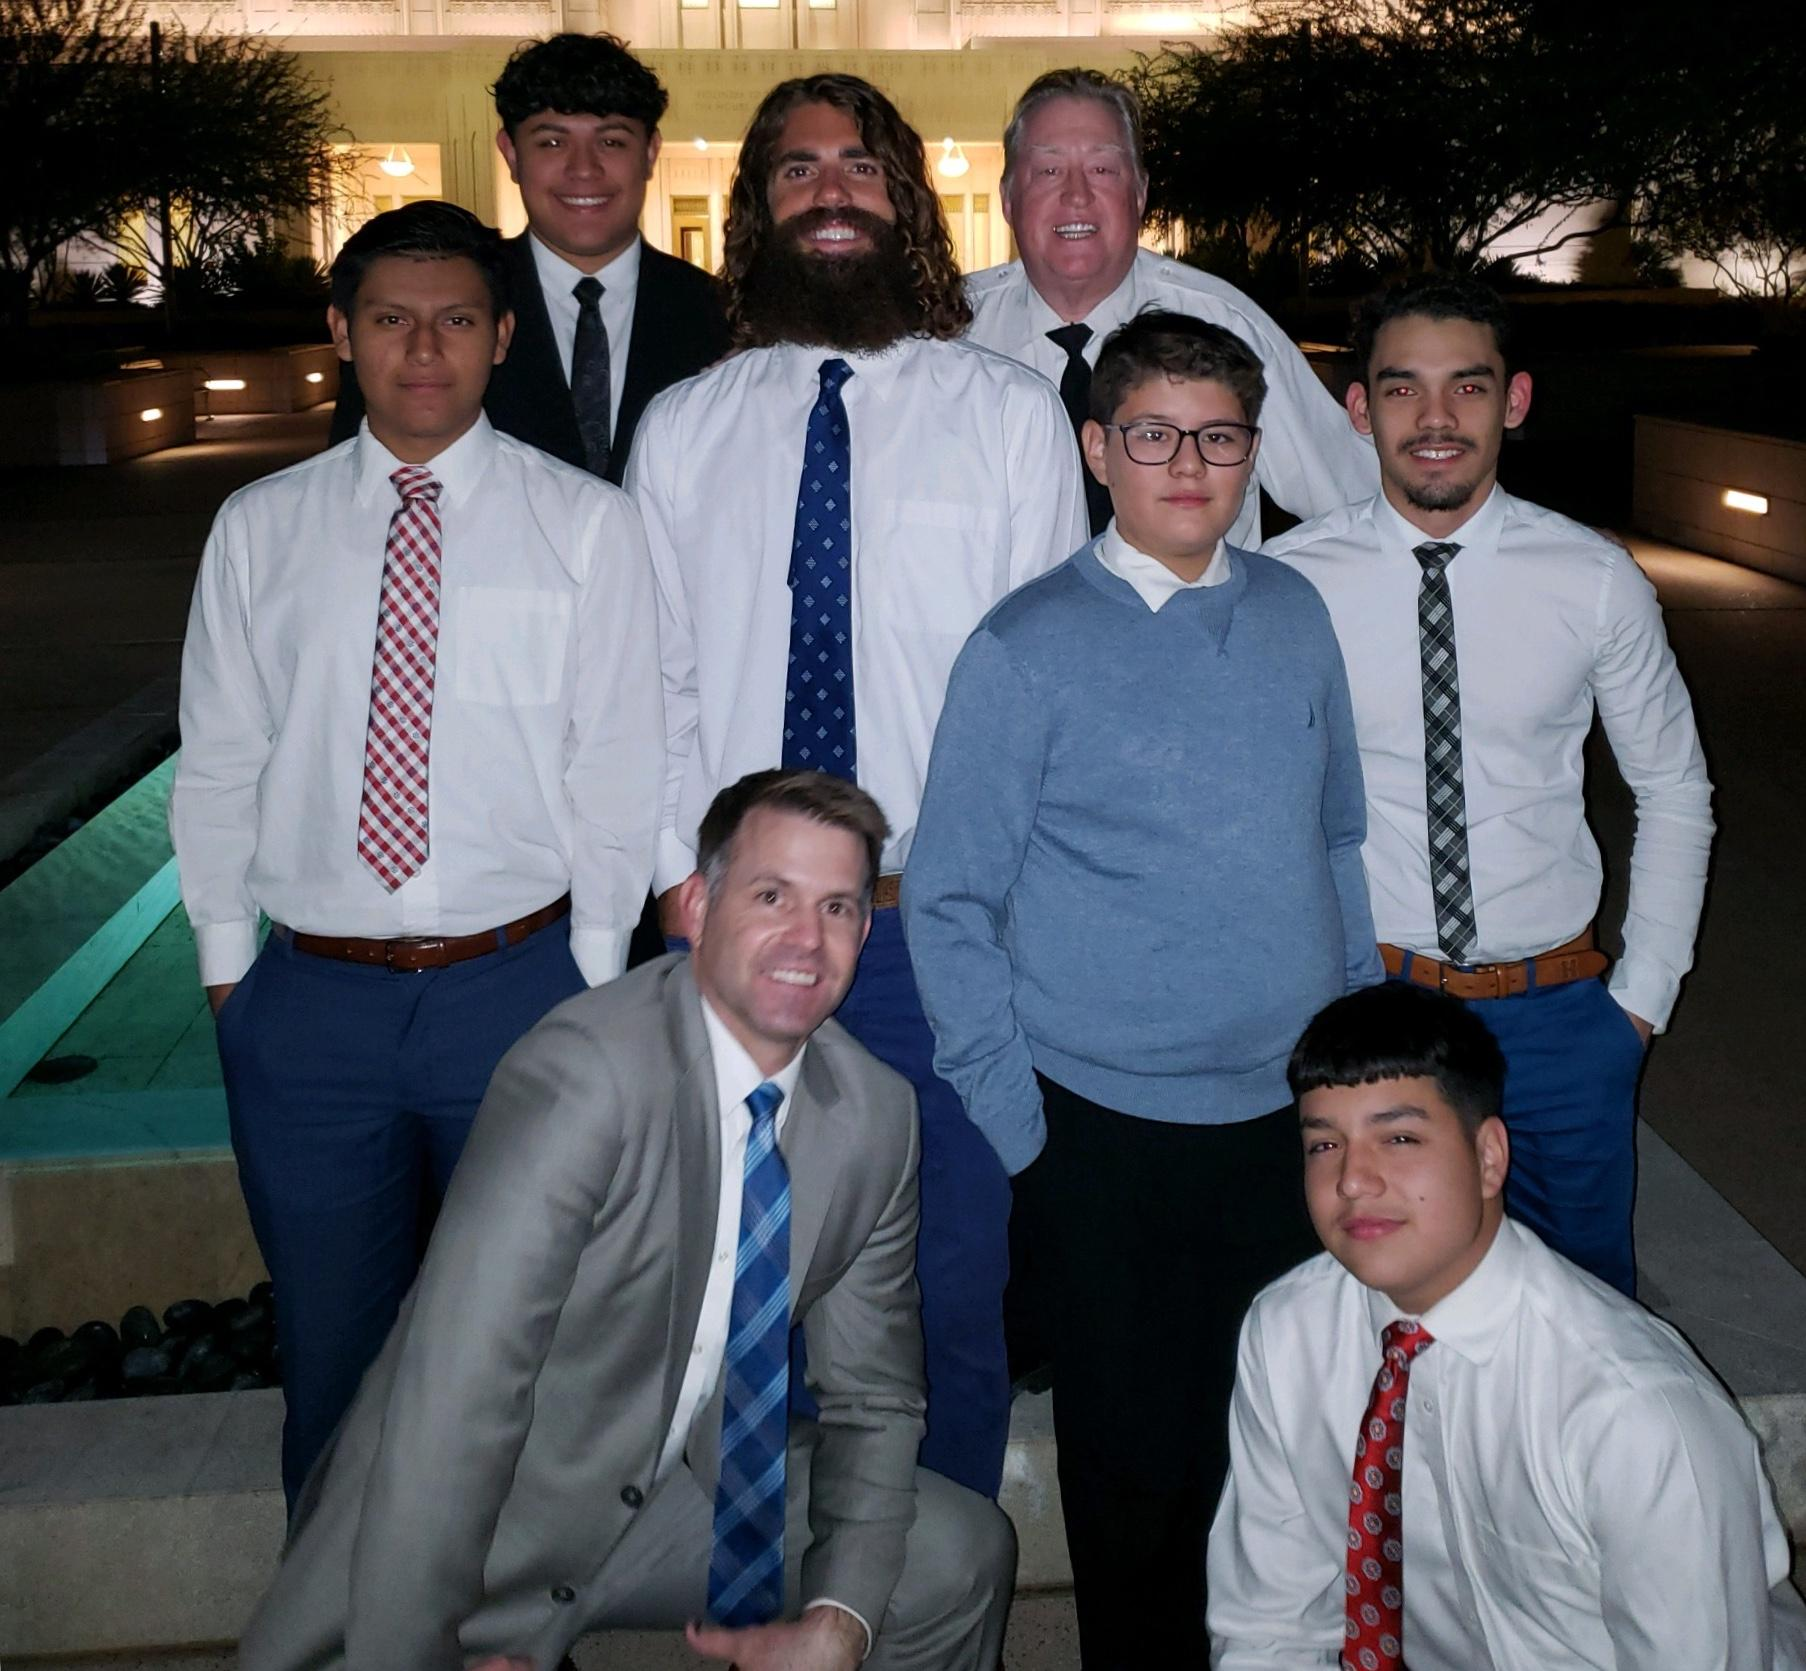 Picture of Matthew and 7 members of his mens group.